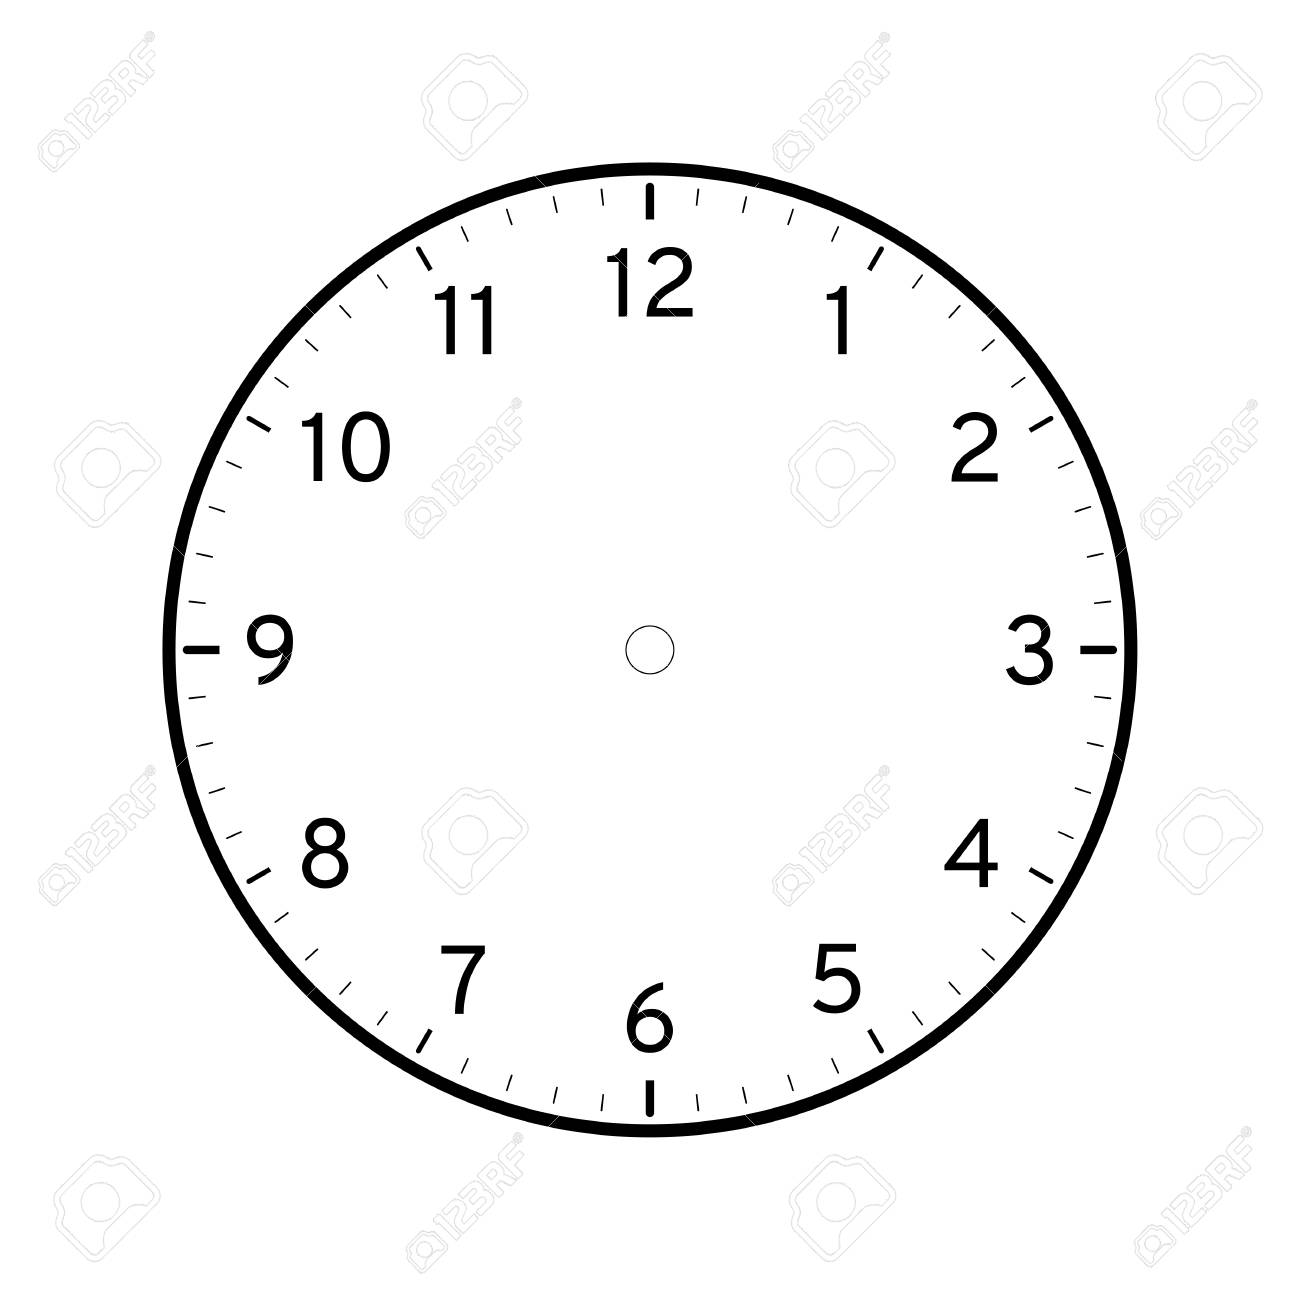 Empty printable clock face template isolated on white background - 126017610